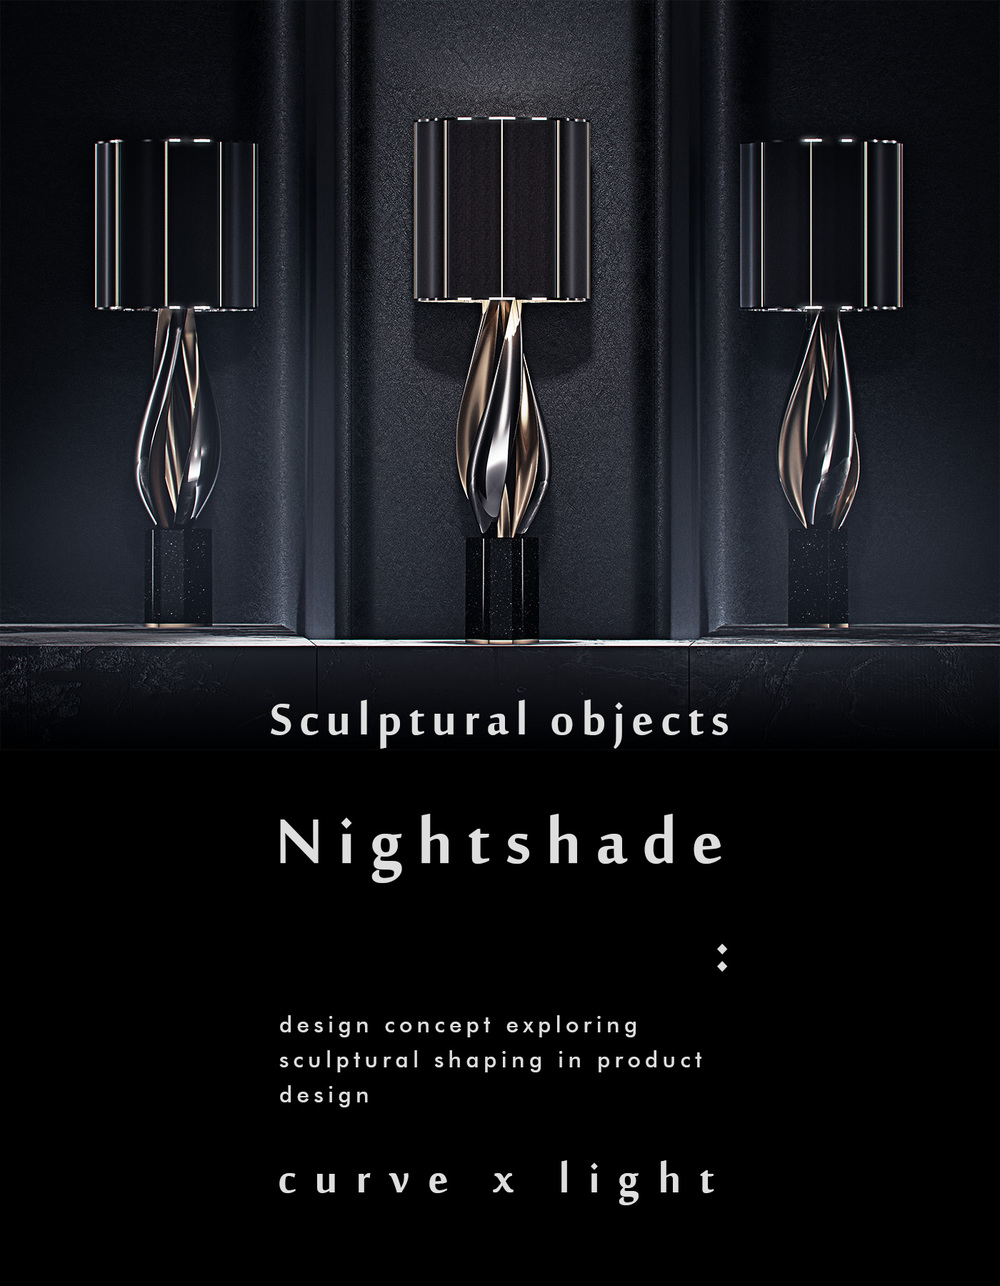 luxury lighting concept, Nightshade Lamp